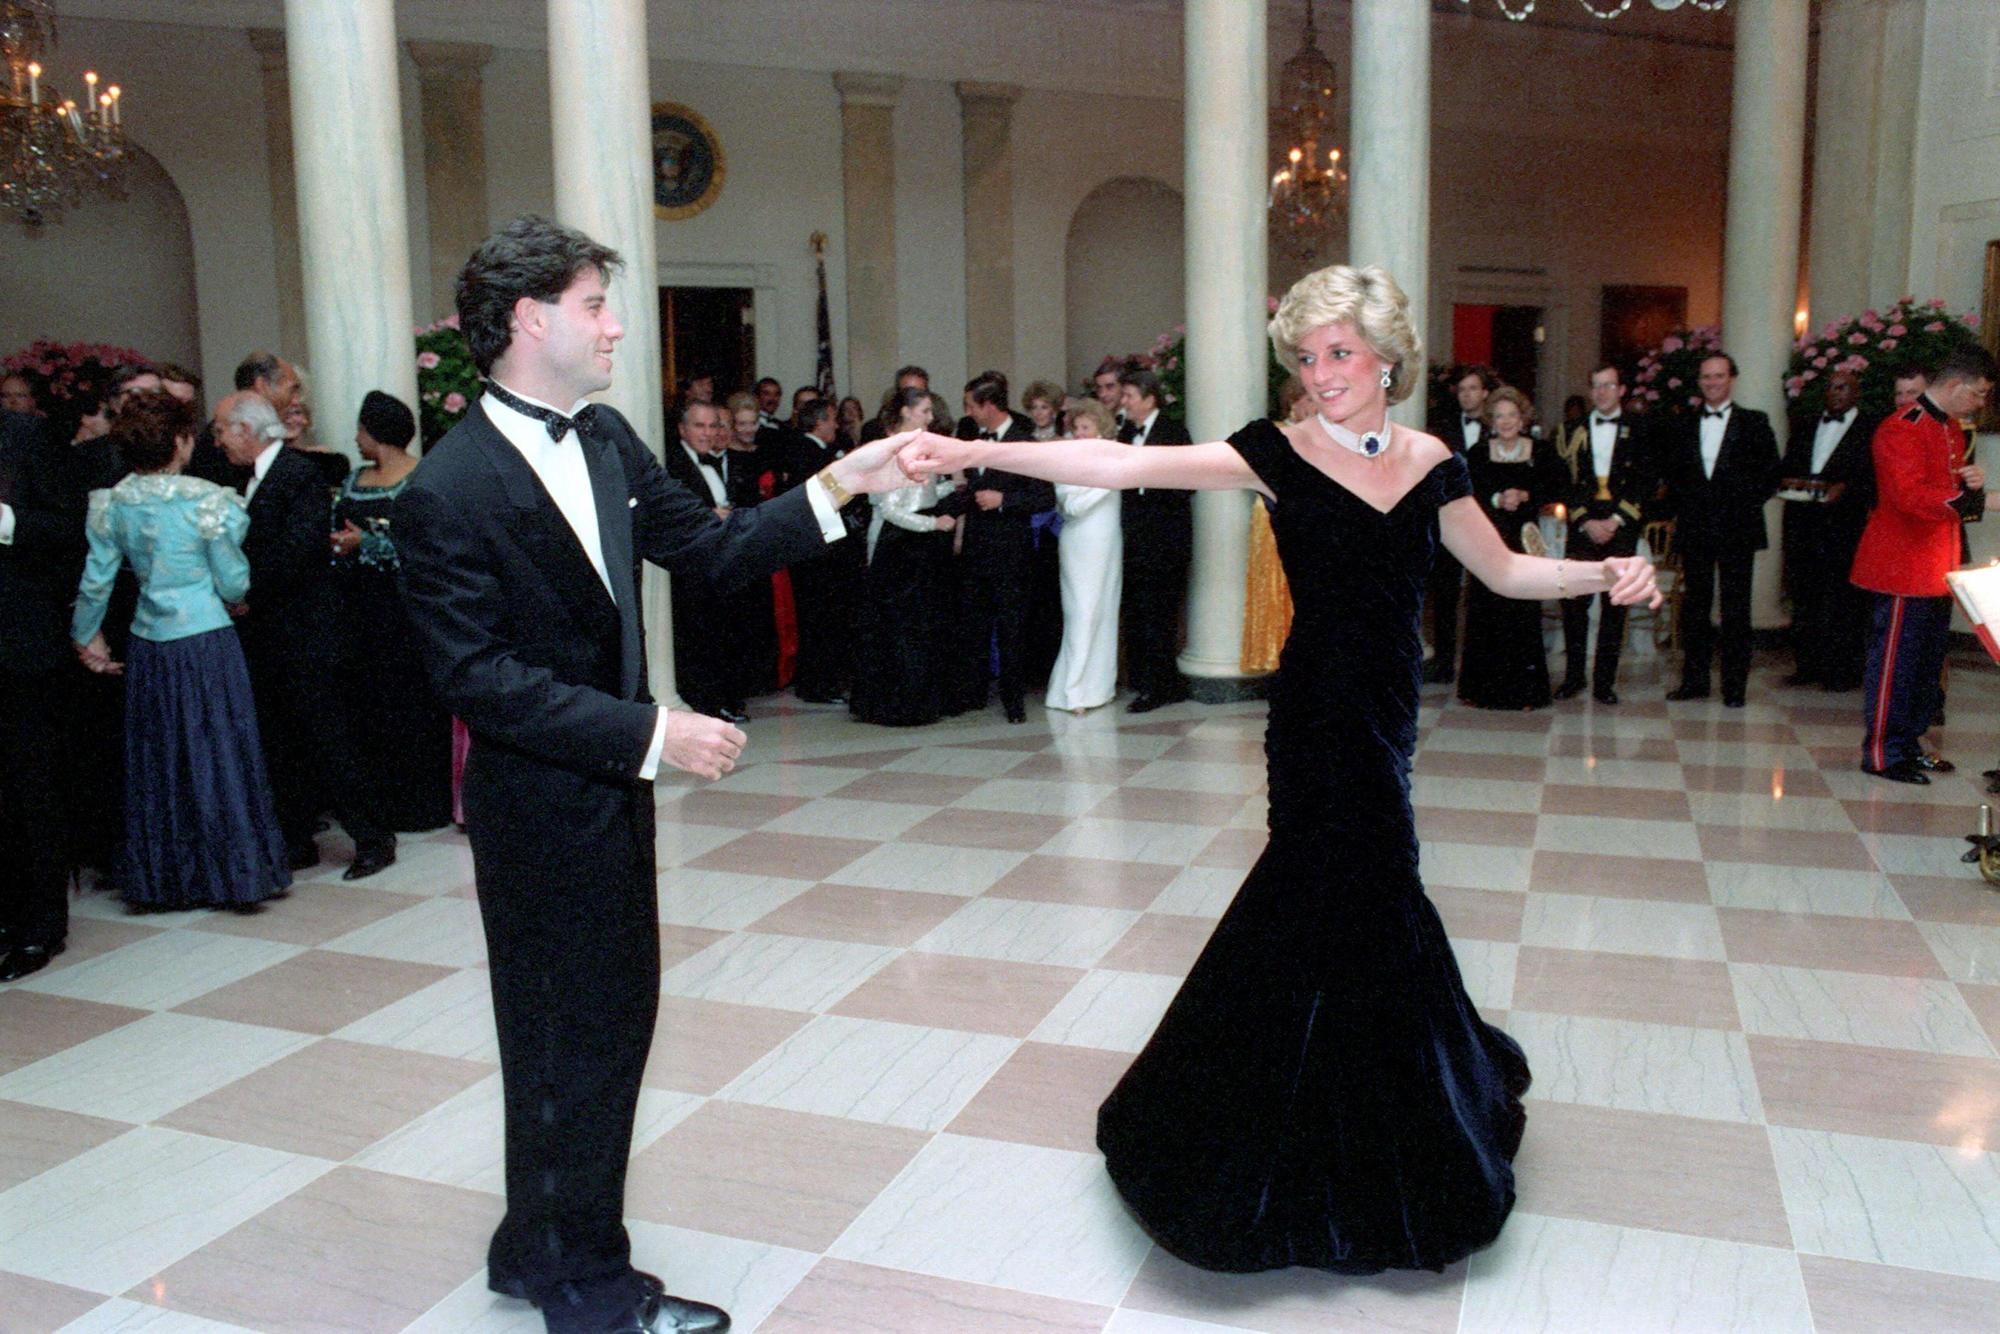 John Travolta says dancing with Princess Diana was 'like a fairytale'